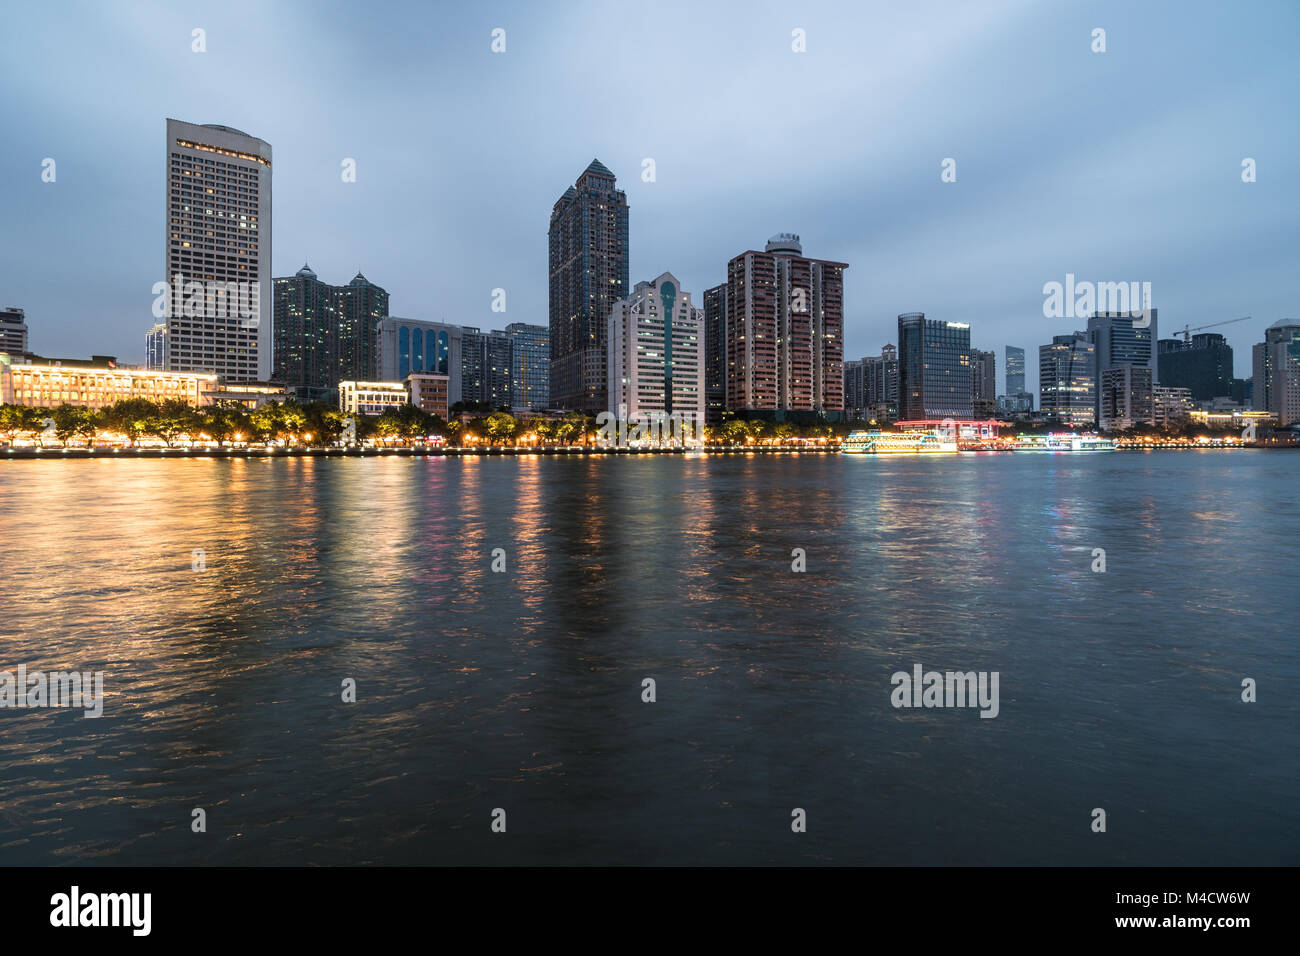 Office buildings and hotel tower reflect in the water of the Pearl river that crosses the Guangzhou downtown district - Stock Image